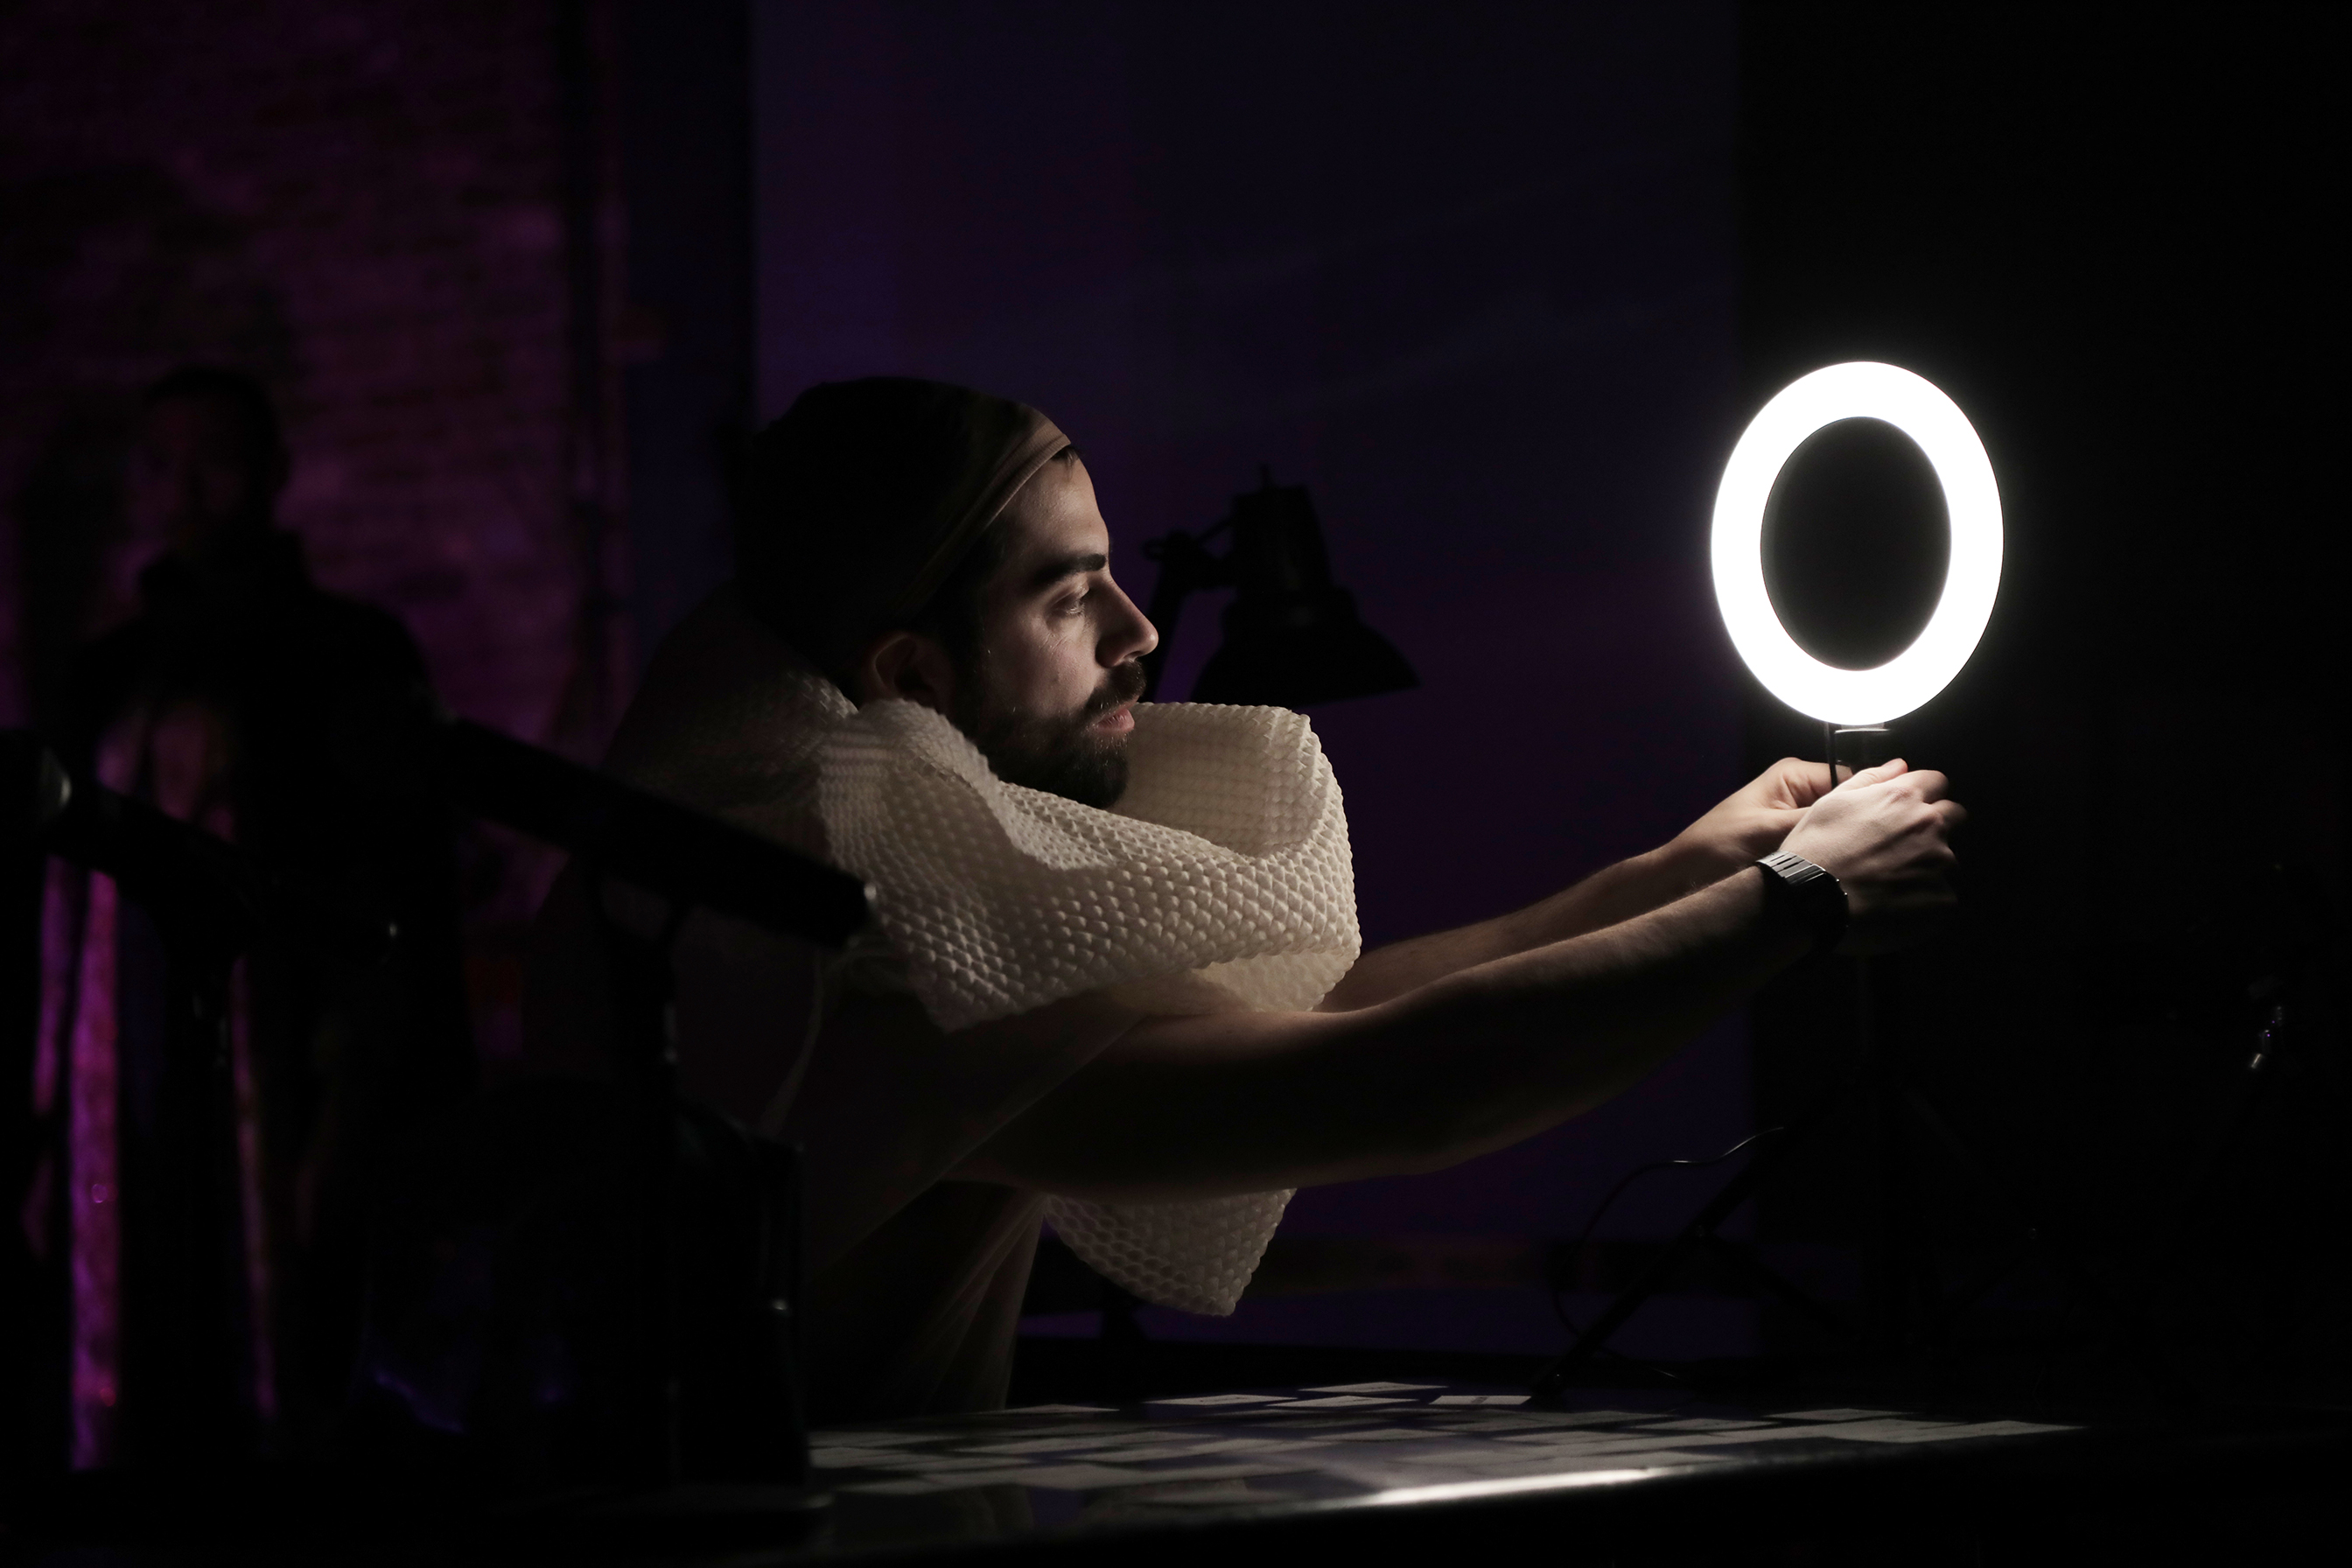 man looking into a ring light